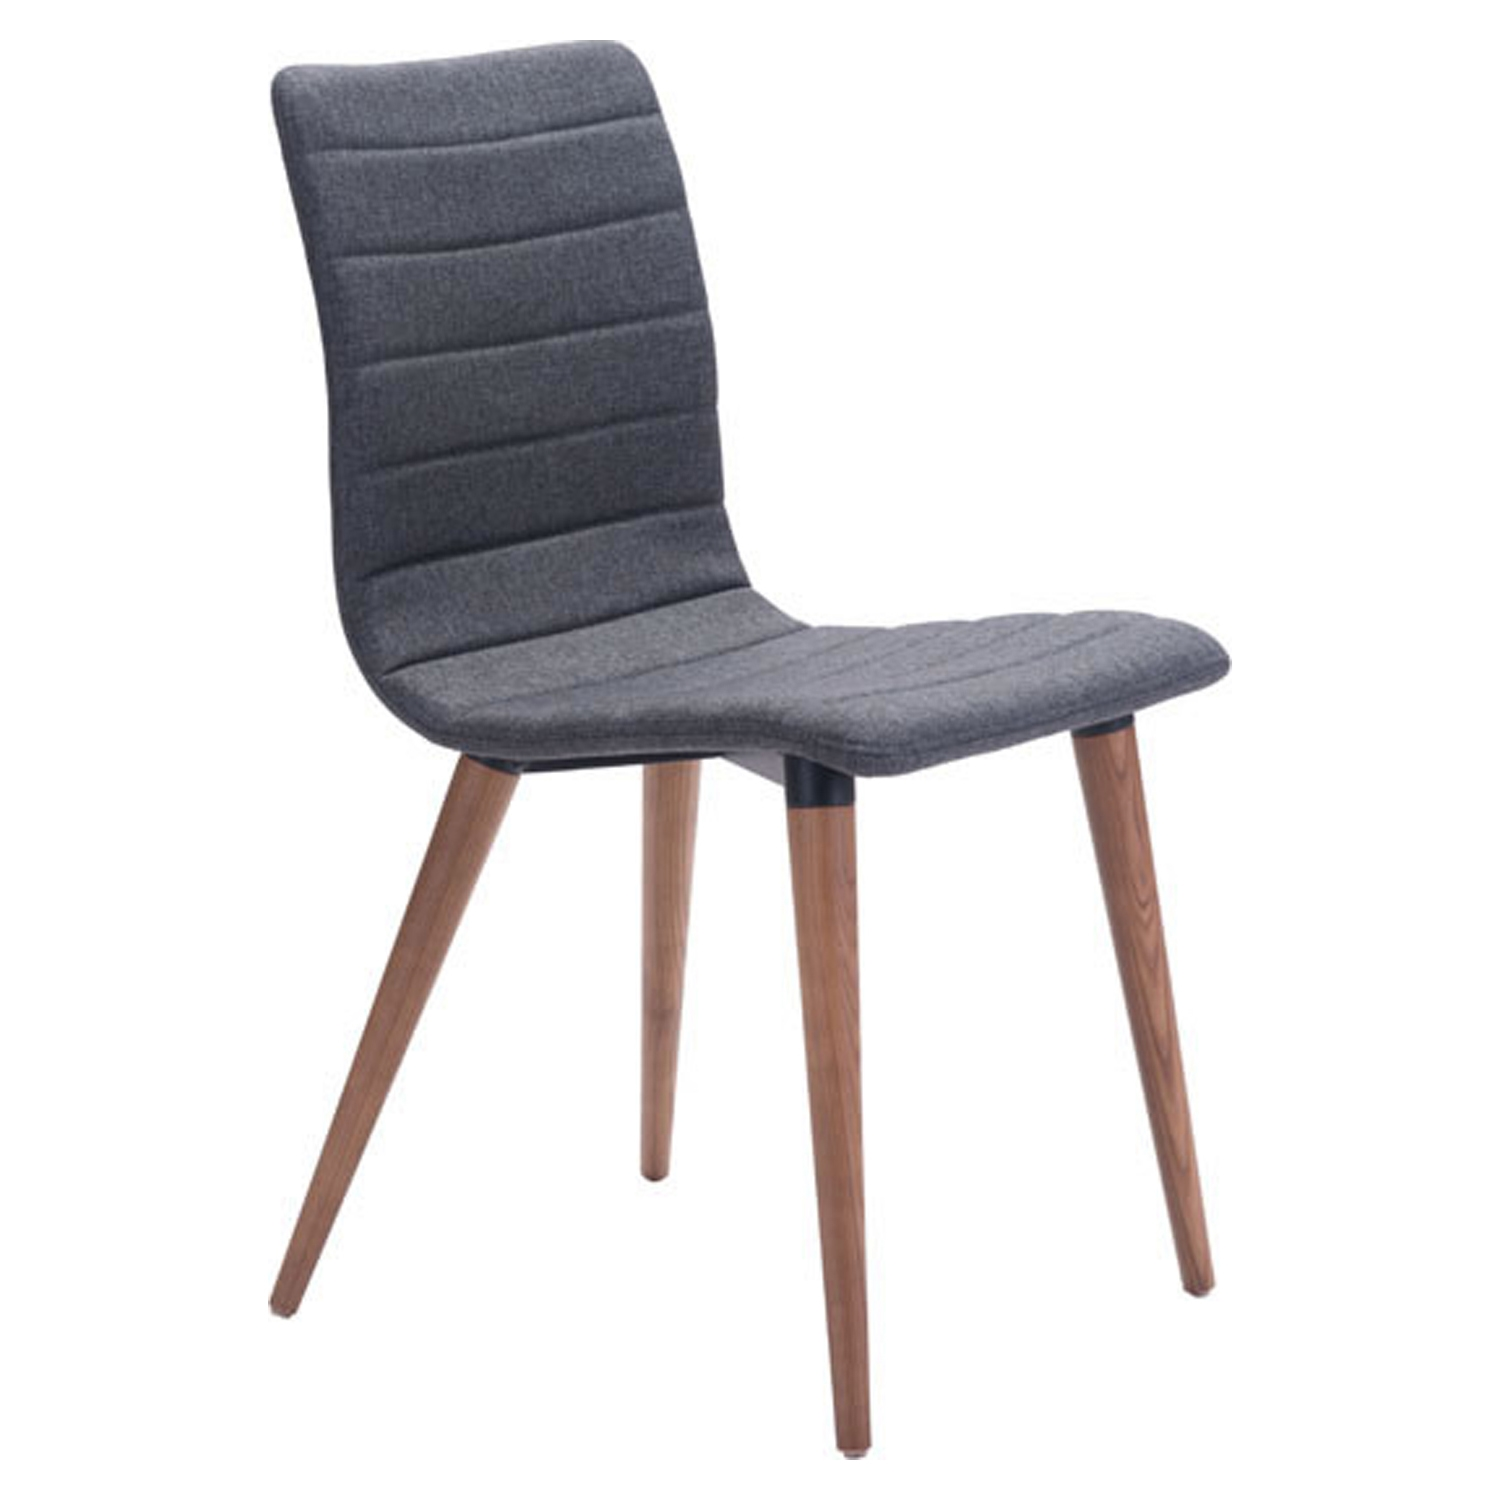 Jericho Dining Chair - Gray - ZM-100274